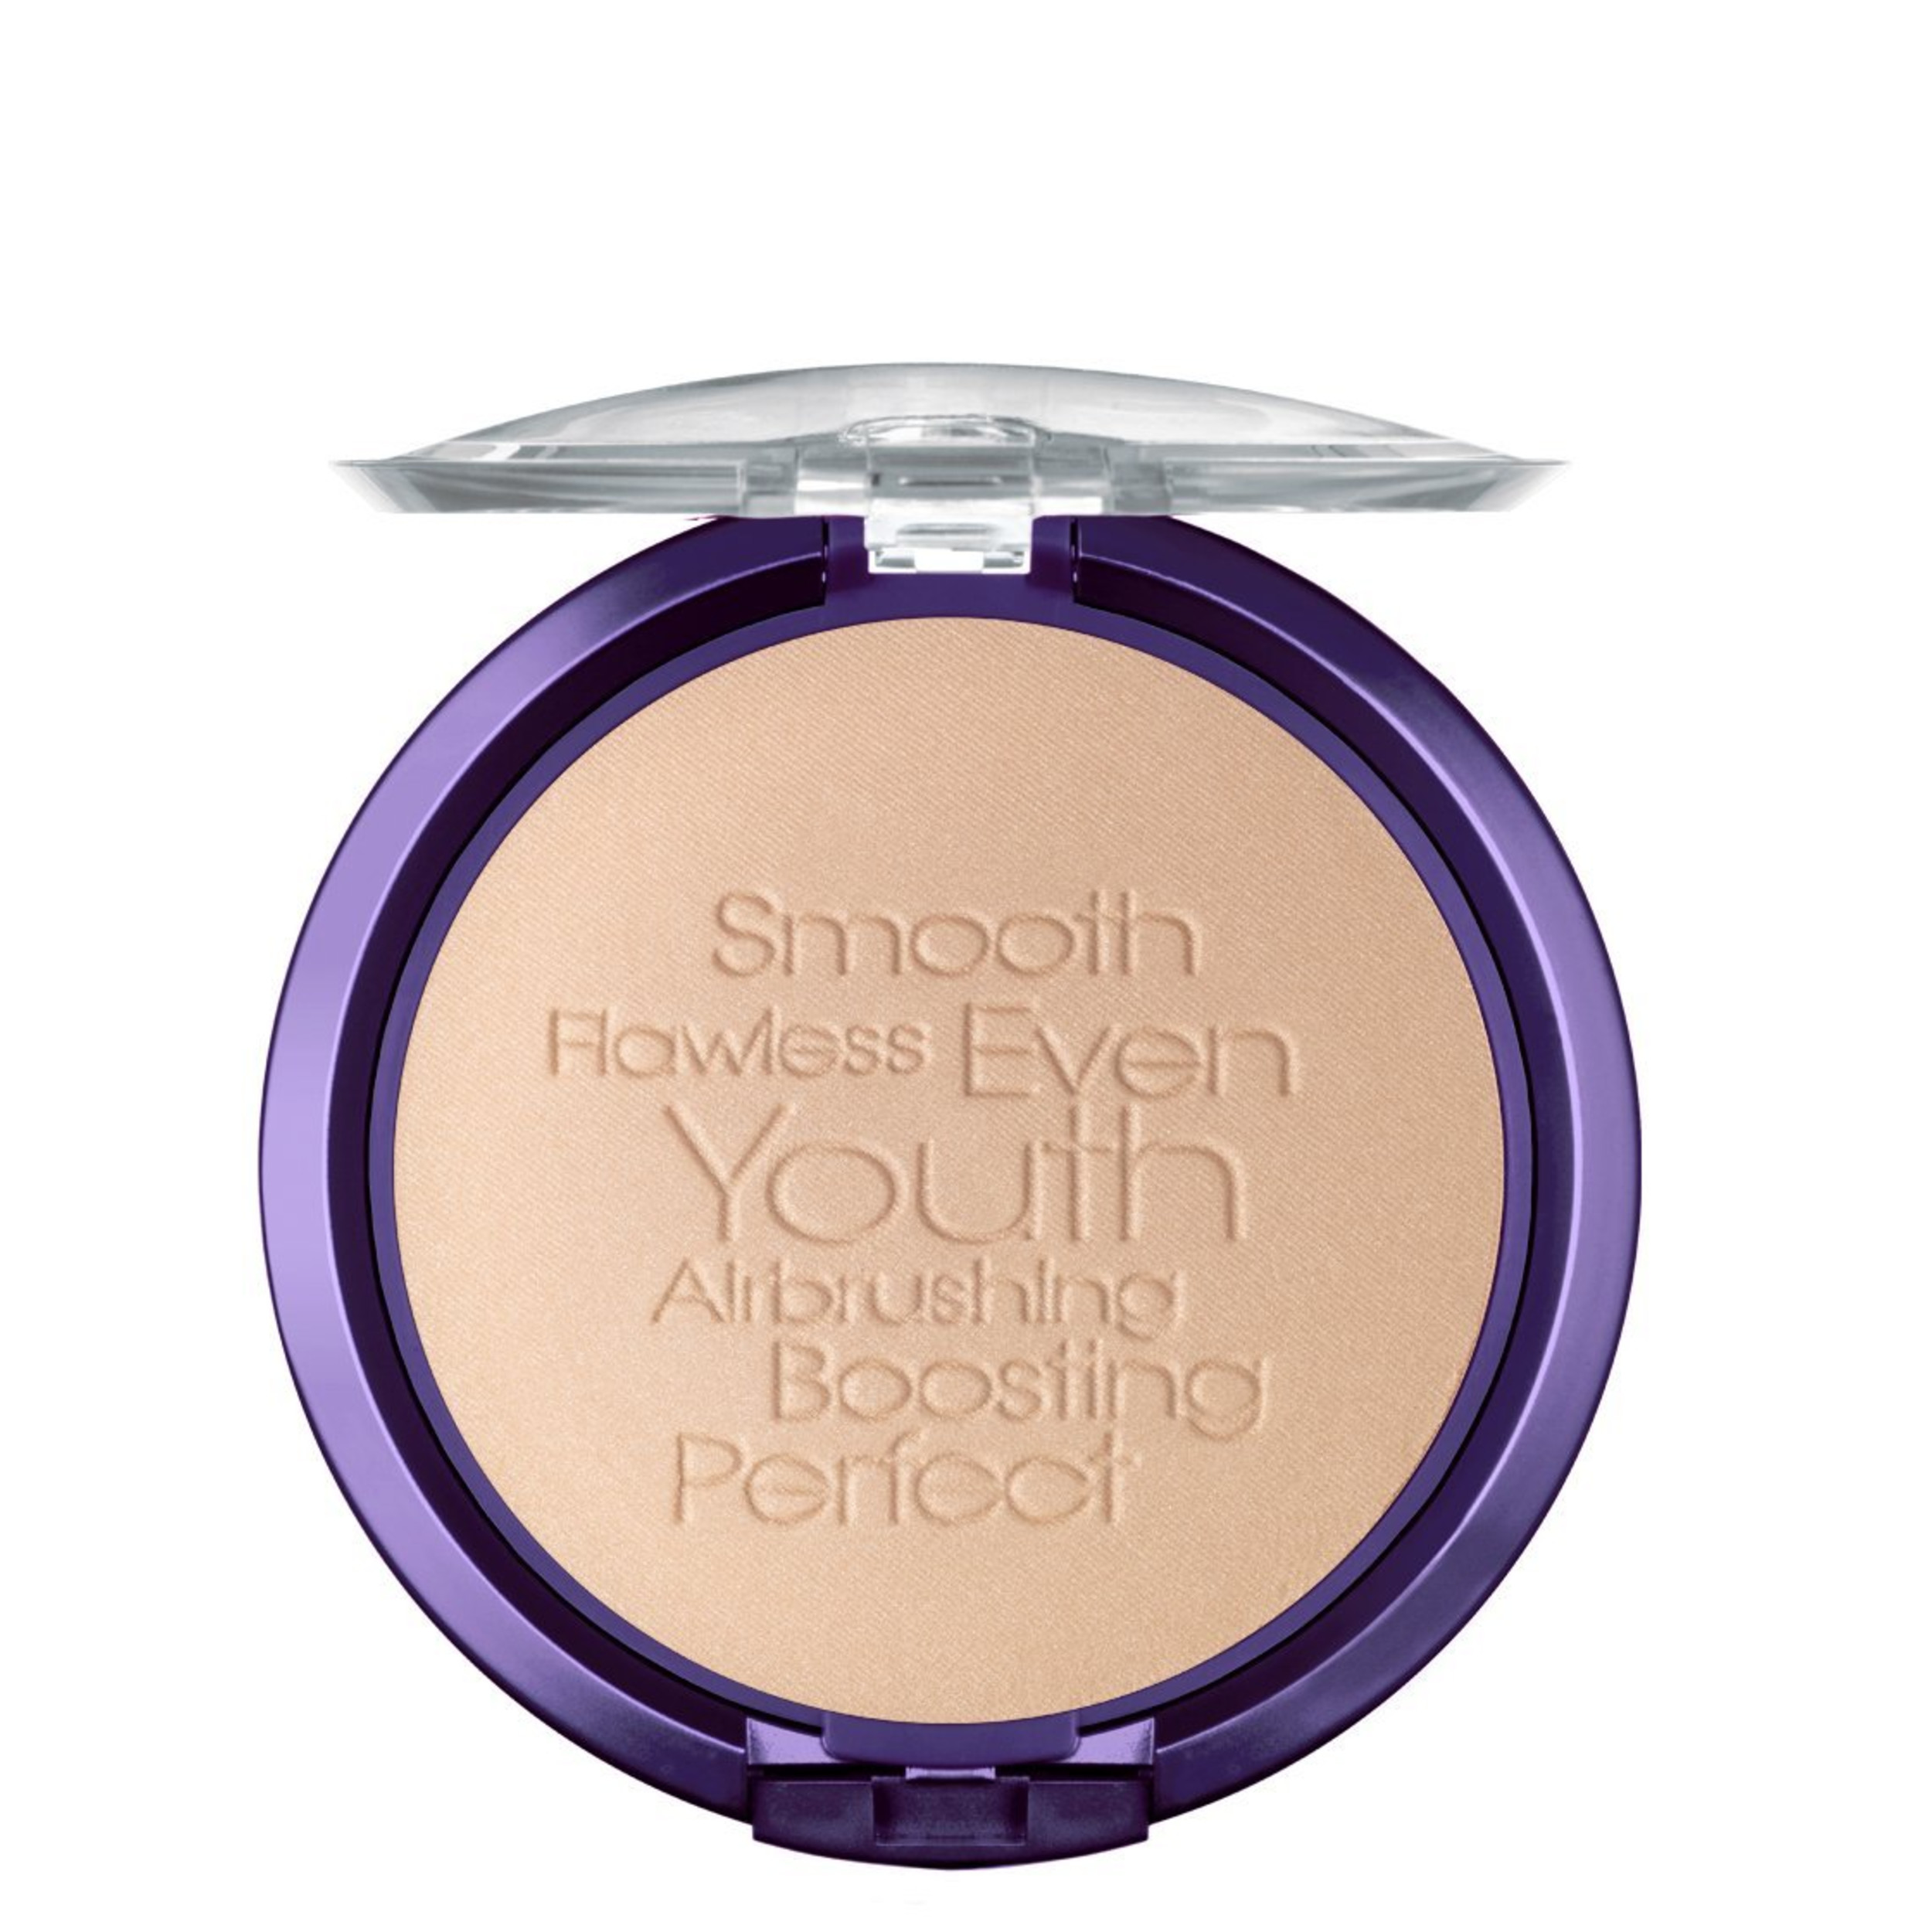 Physicians Formula Youthful Wear 2 Cosmeceutical Youth-Boosting Makeup Mattifying Face Powder - Translucent